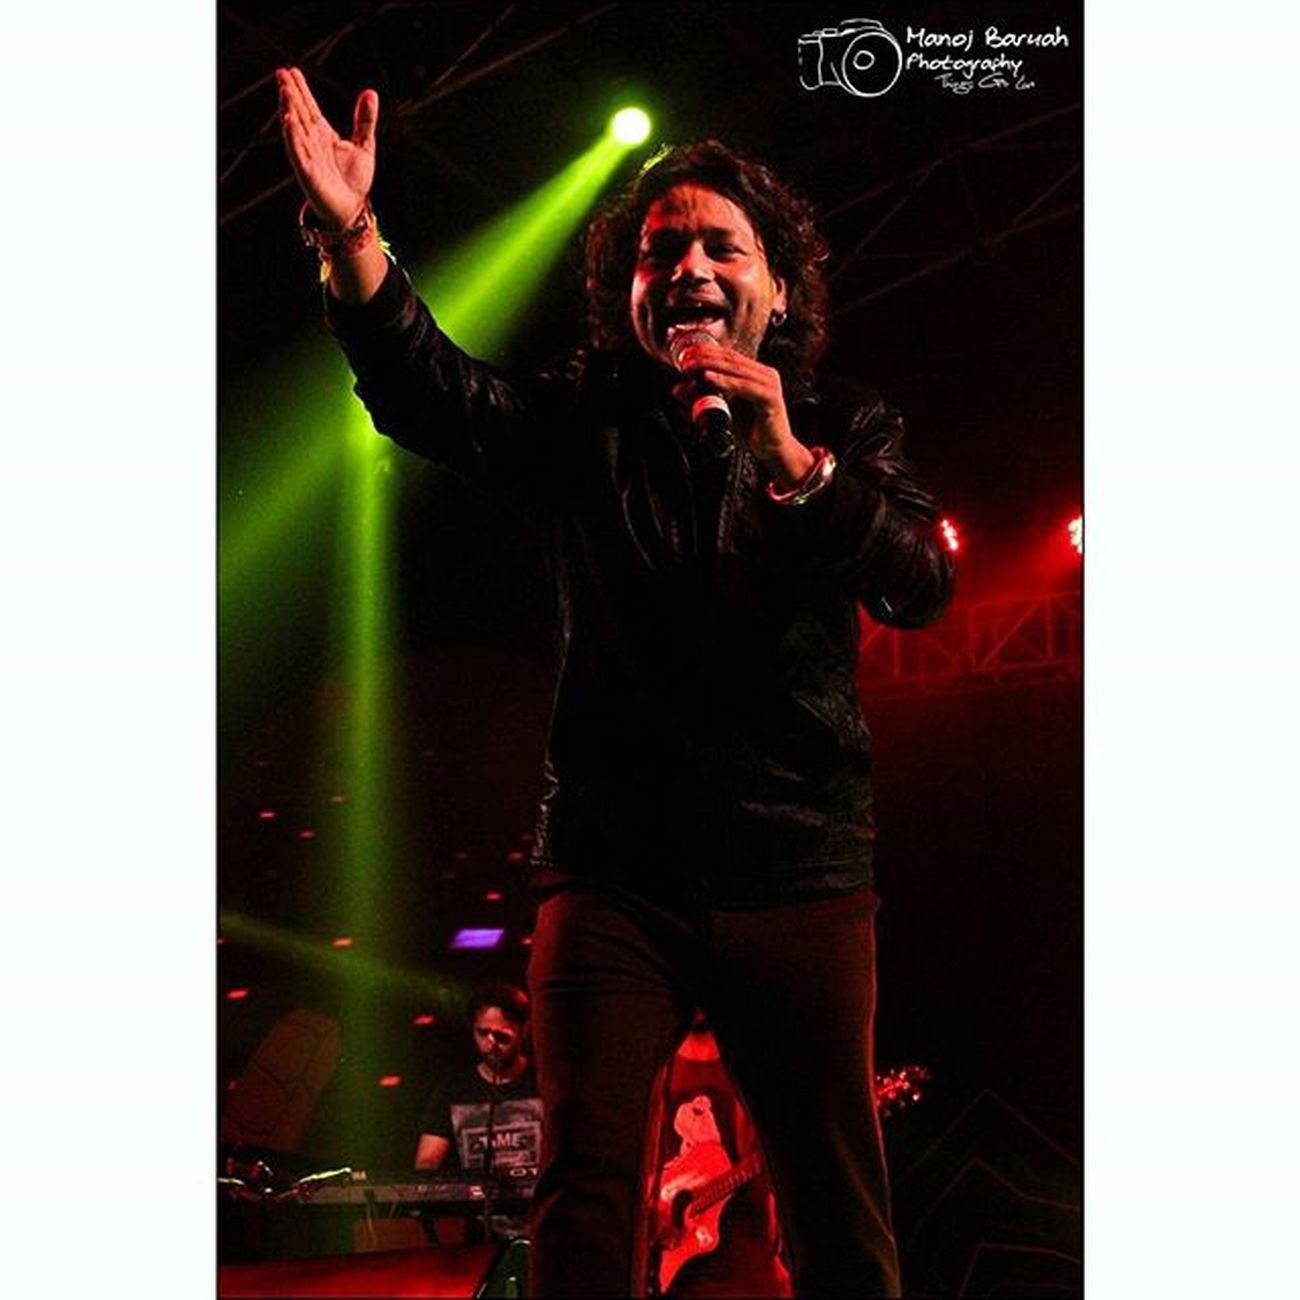 Kailash Kher ❤ Nh7 Weekender Shillong. 24th Oct 2015. Sipfseries Sipf2015 Sipffeatures